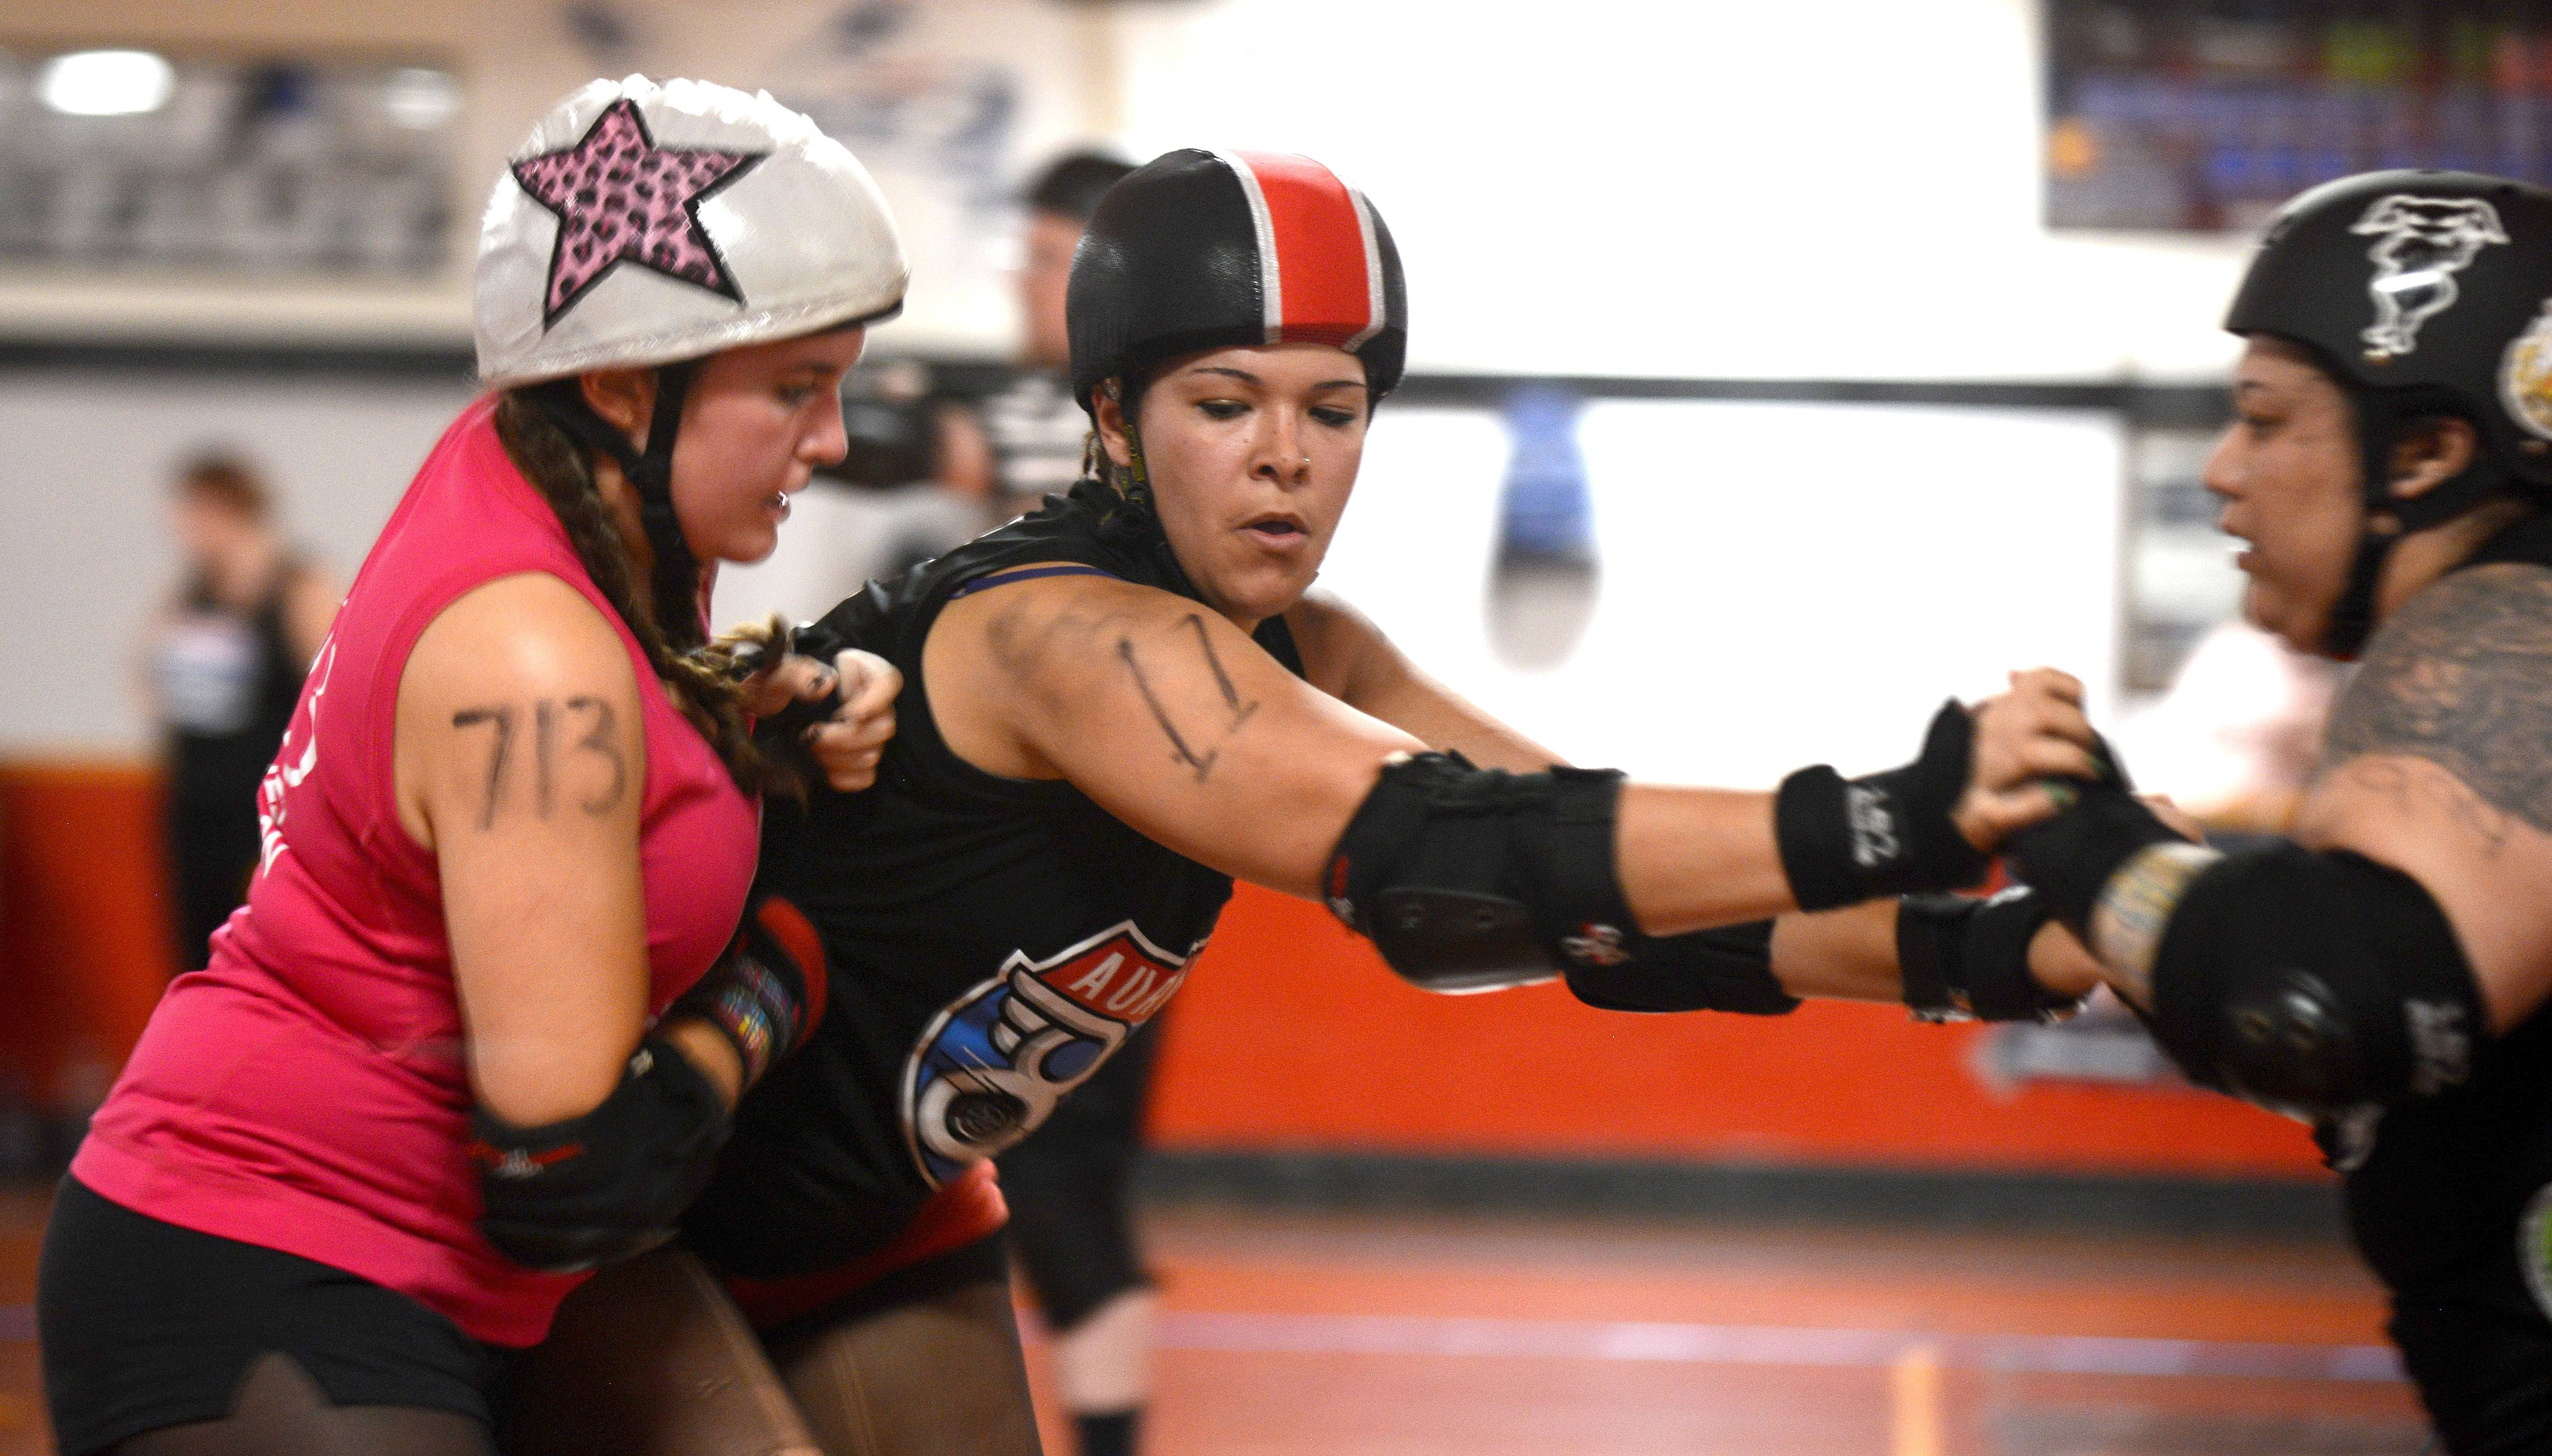 In the pivot position, Charity Hayes of Algonquin, center, works with a teammate to block a jammer from the Cedar Rapids Roller Girls from scoring a point.